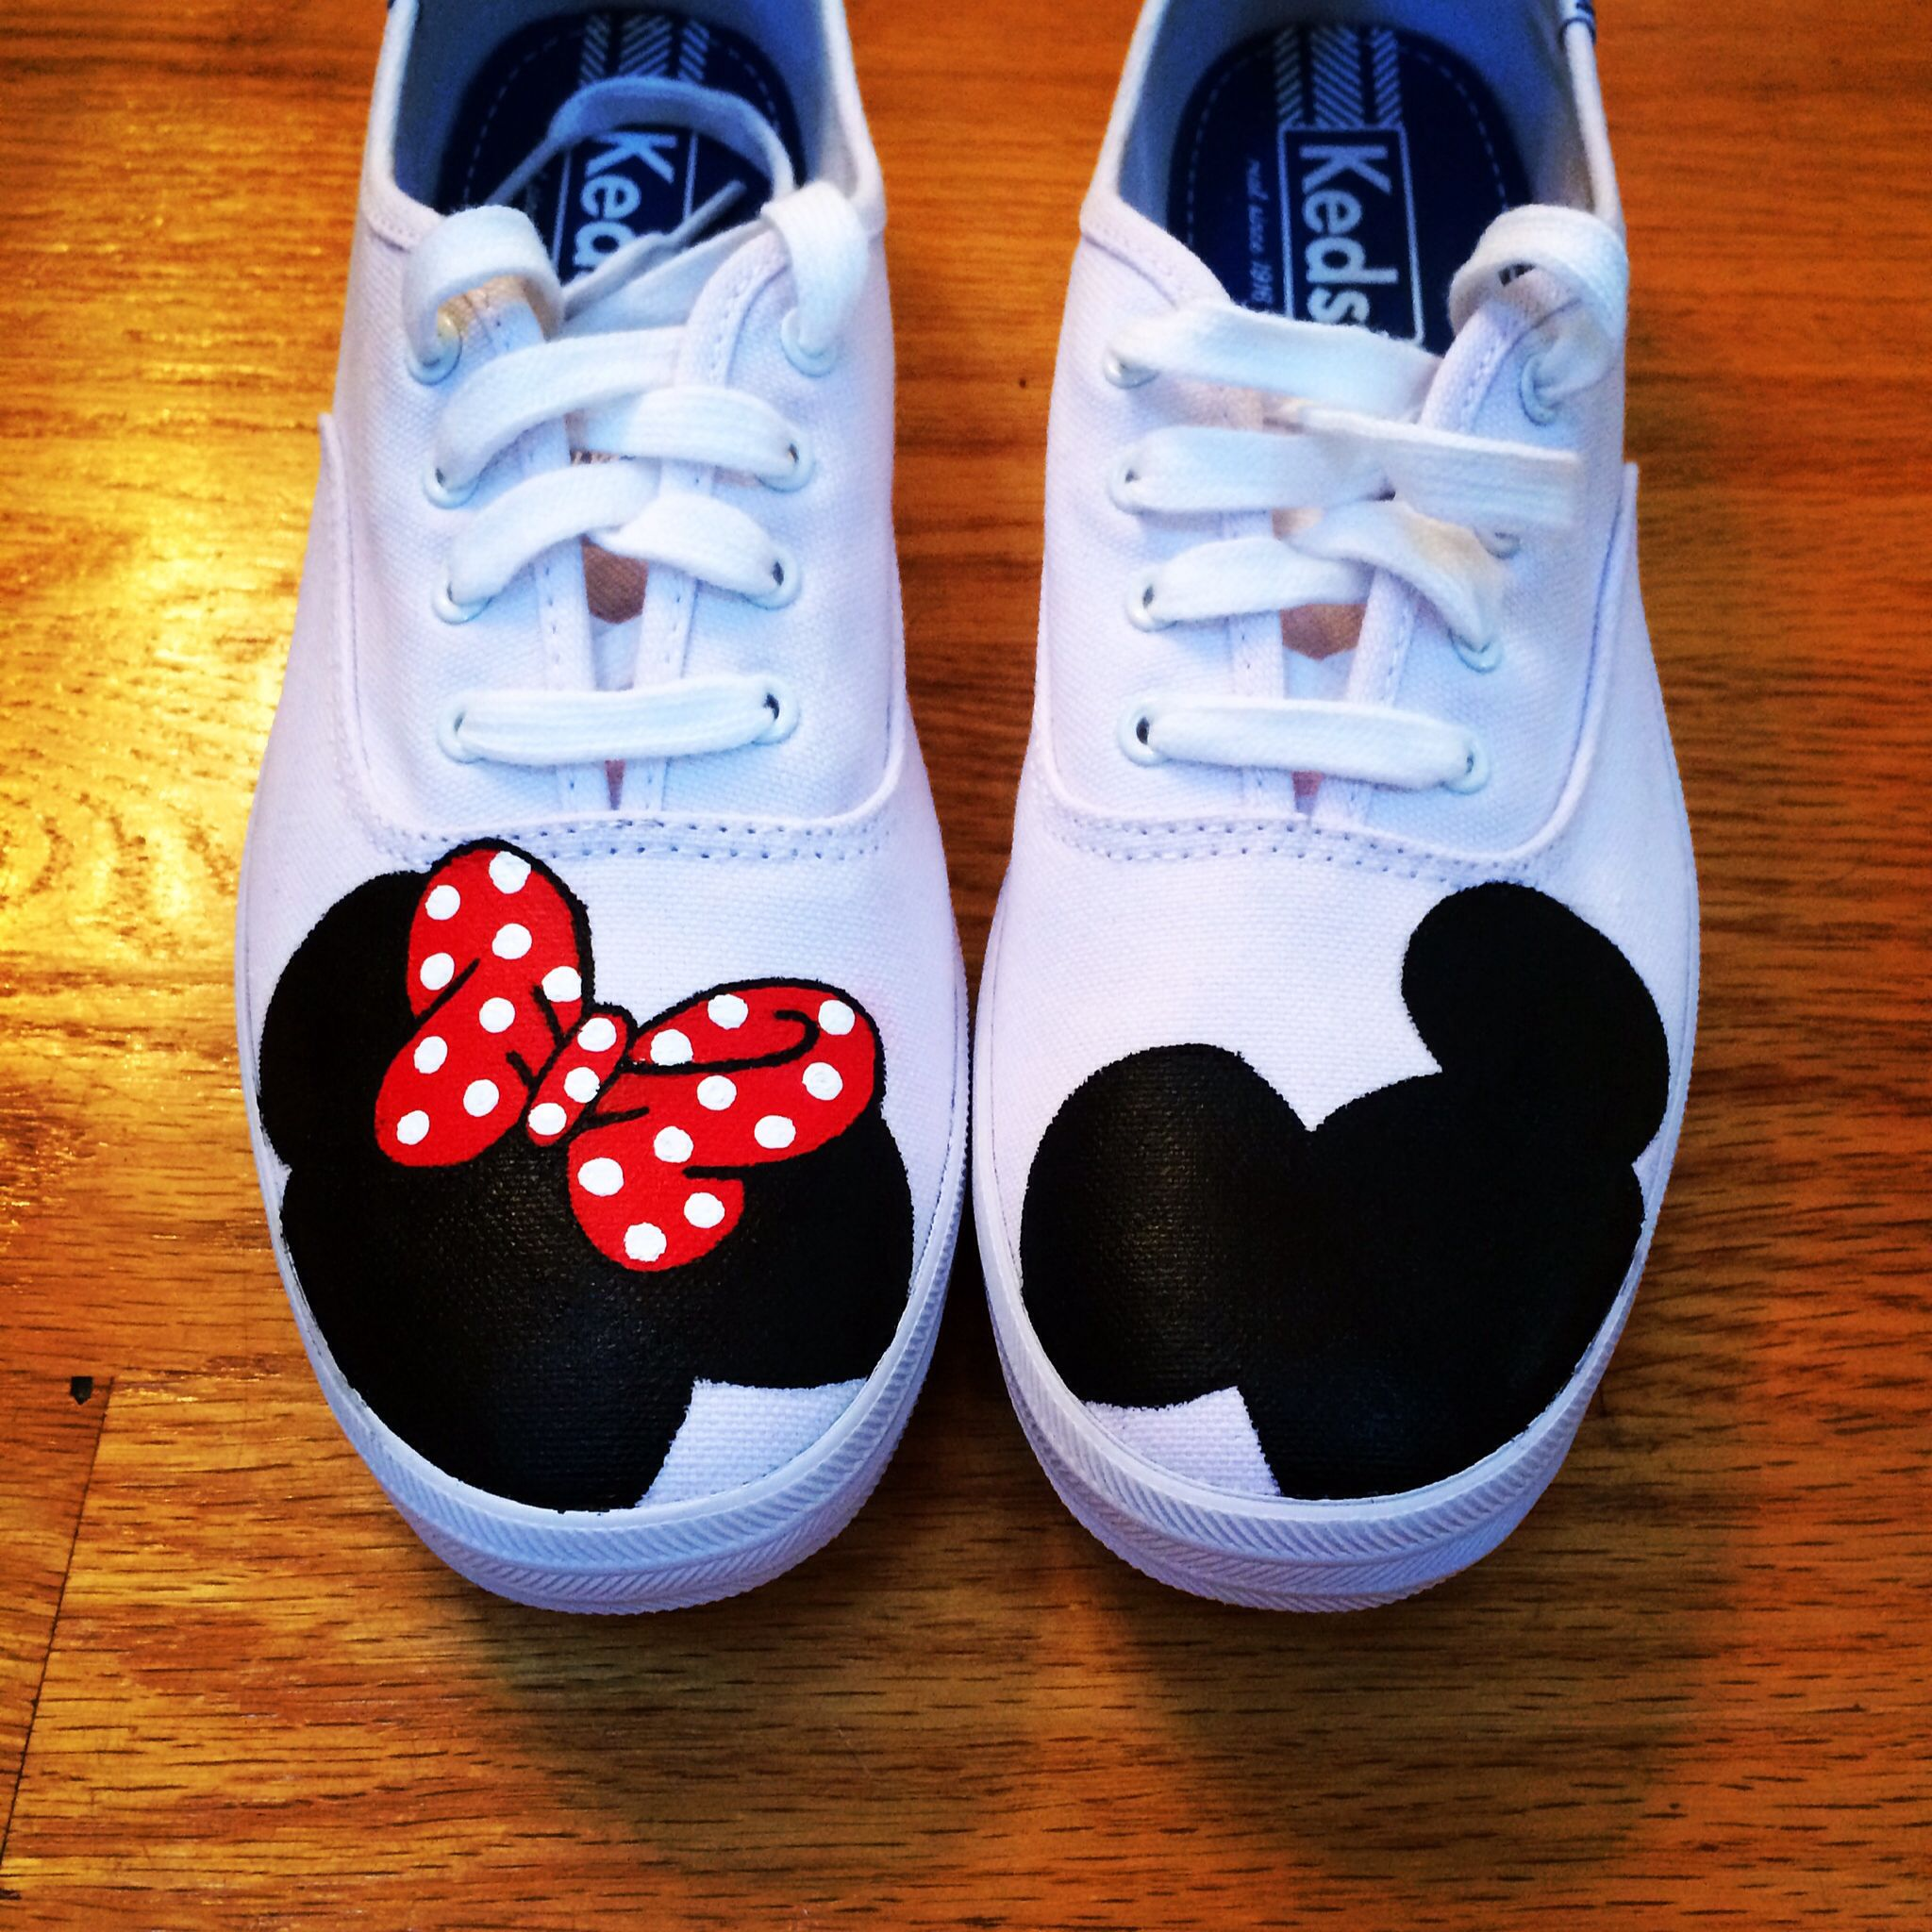 10 easy designs to make funky painted sneakers